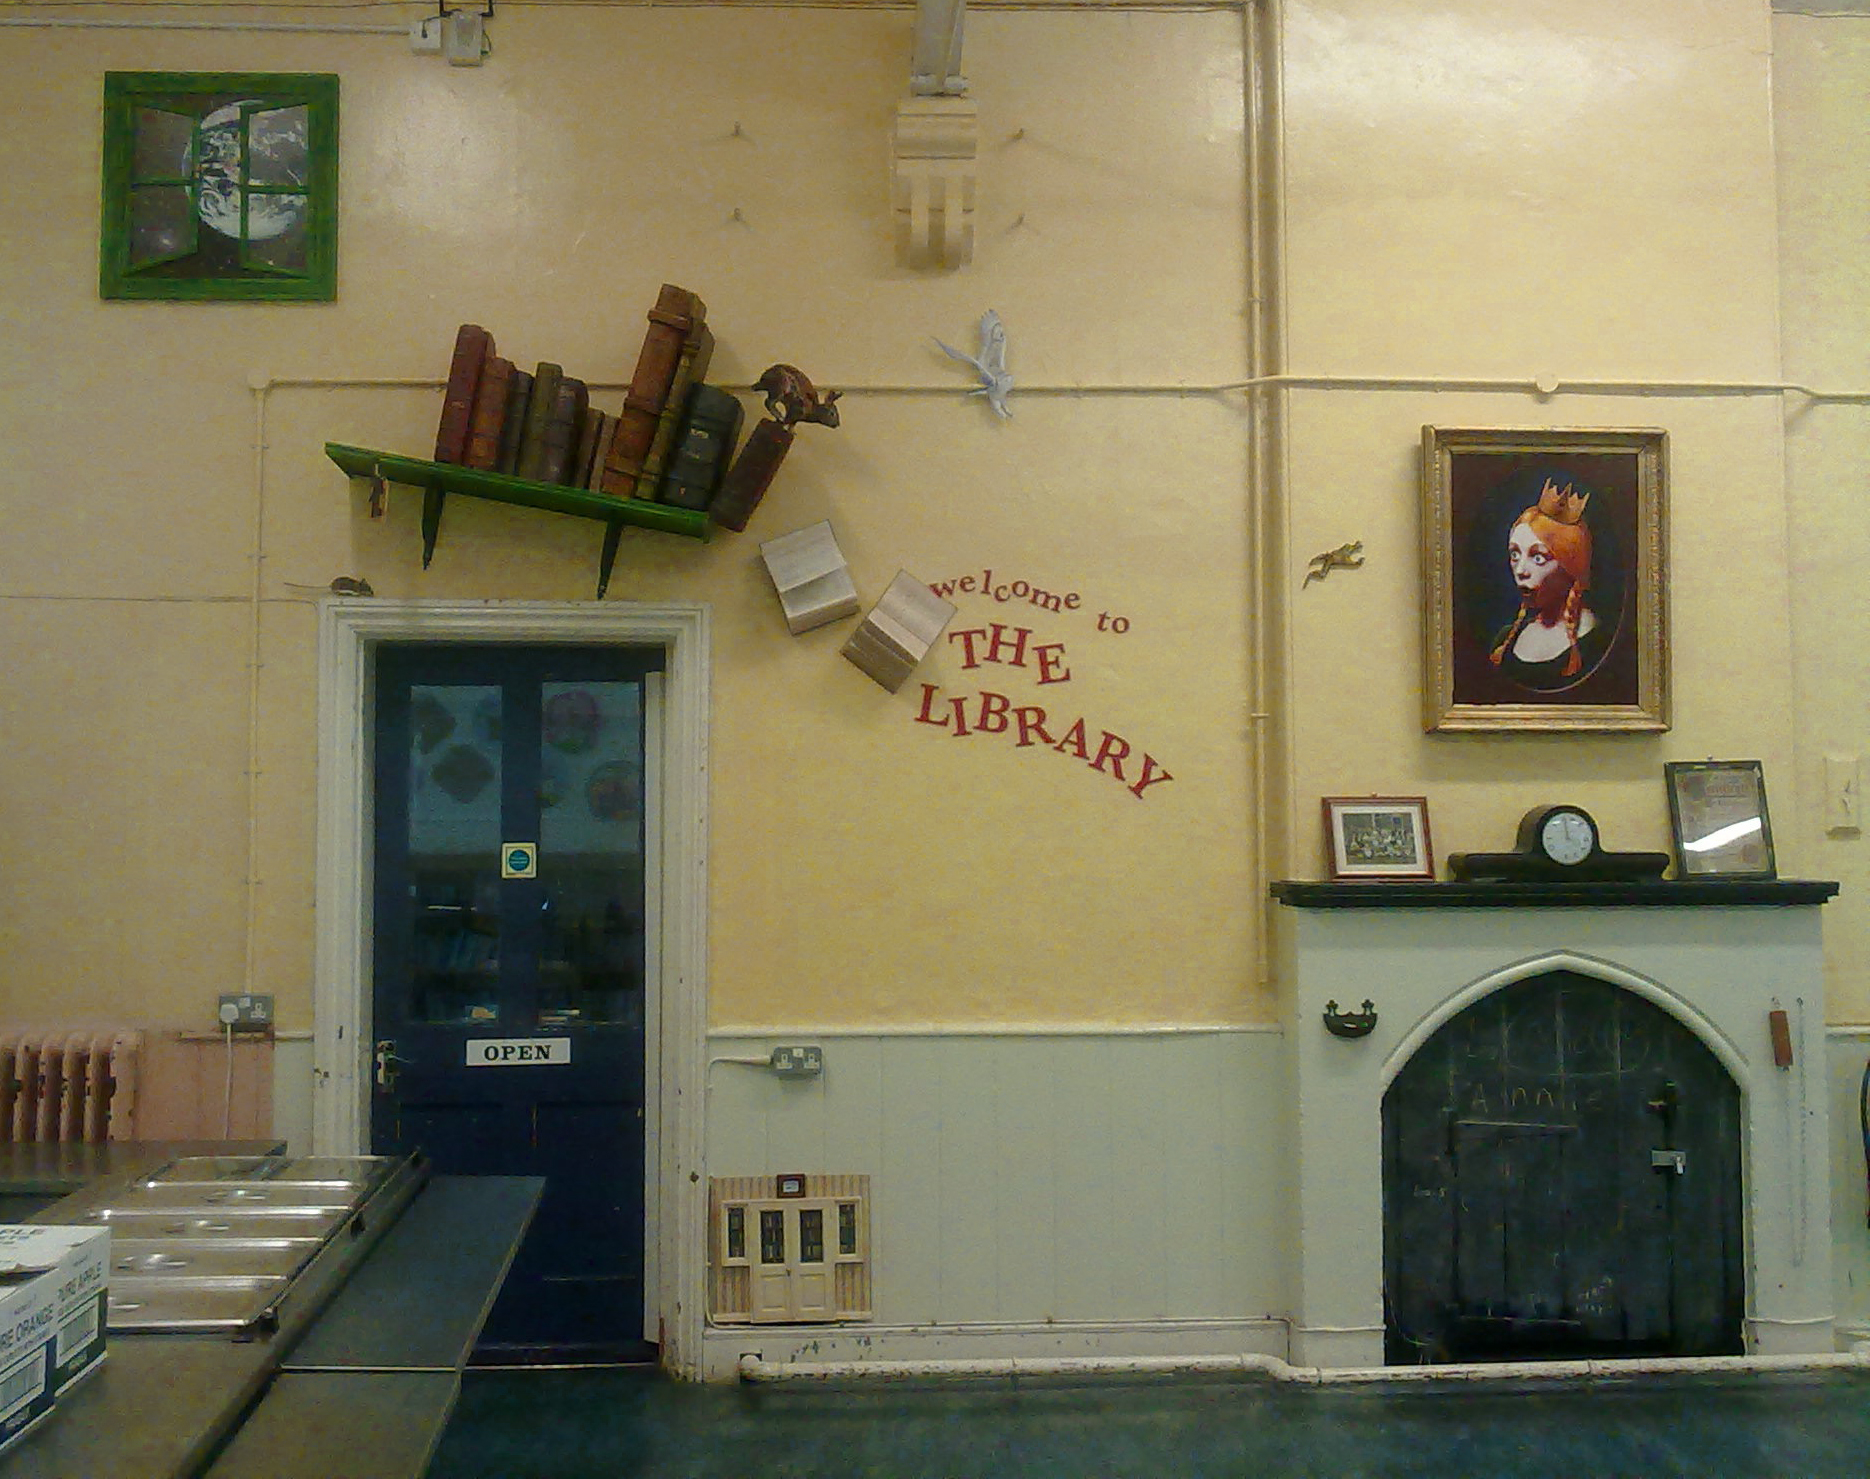 LIBRARY After